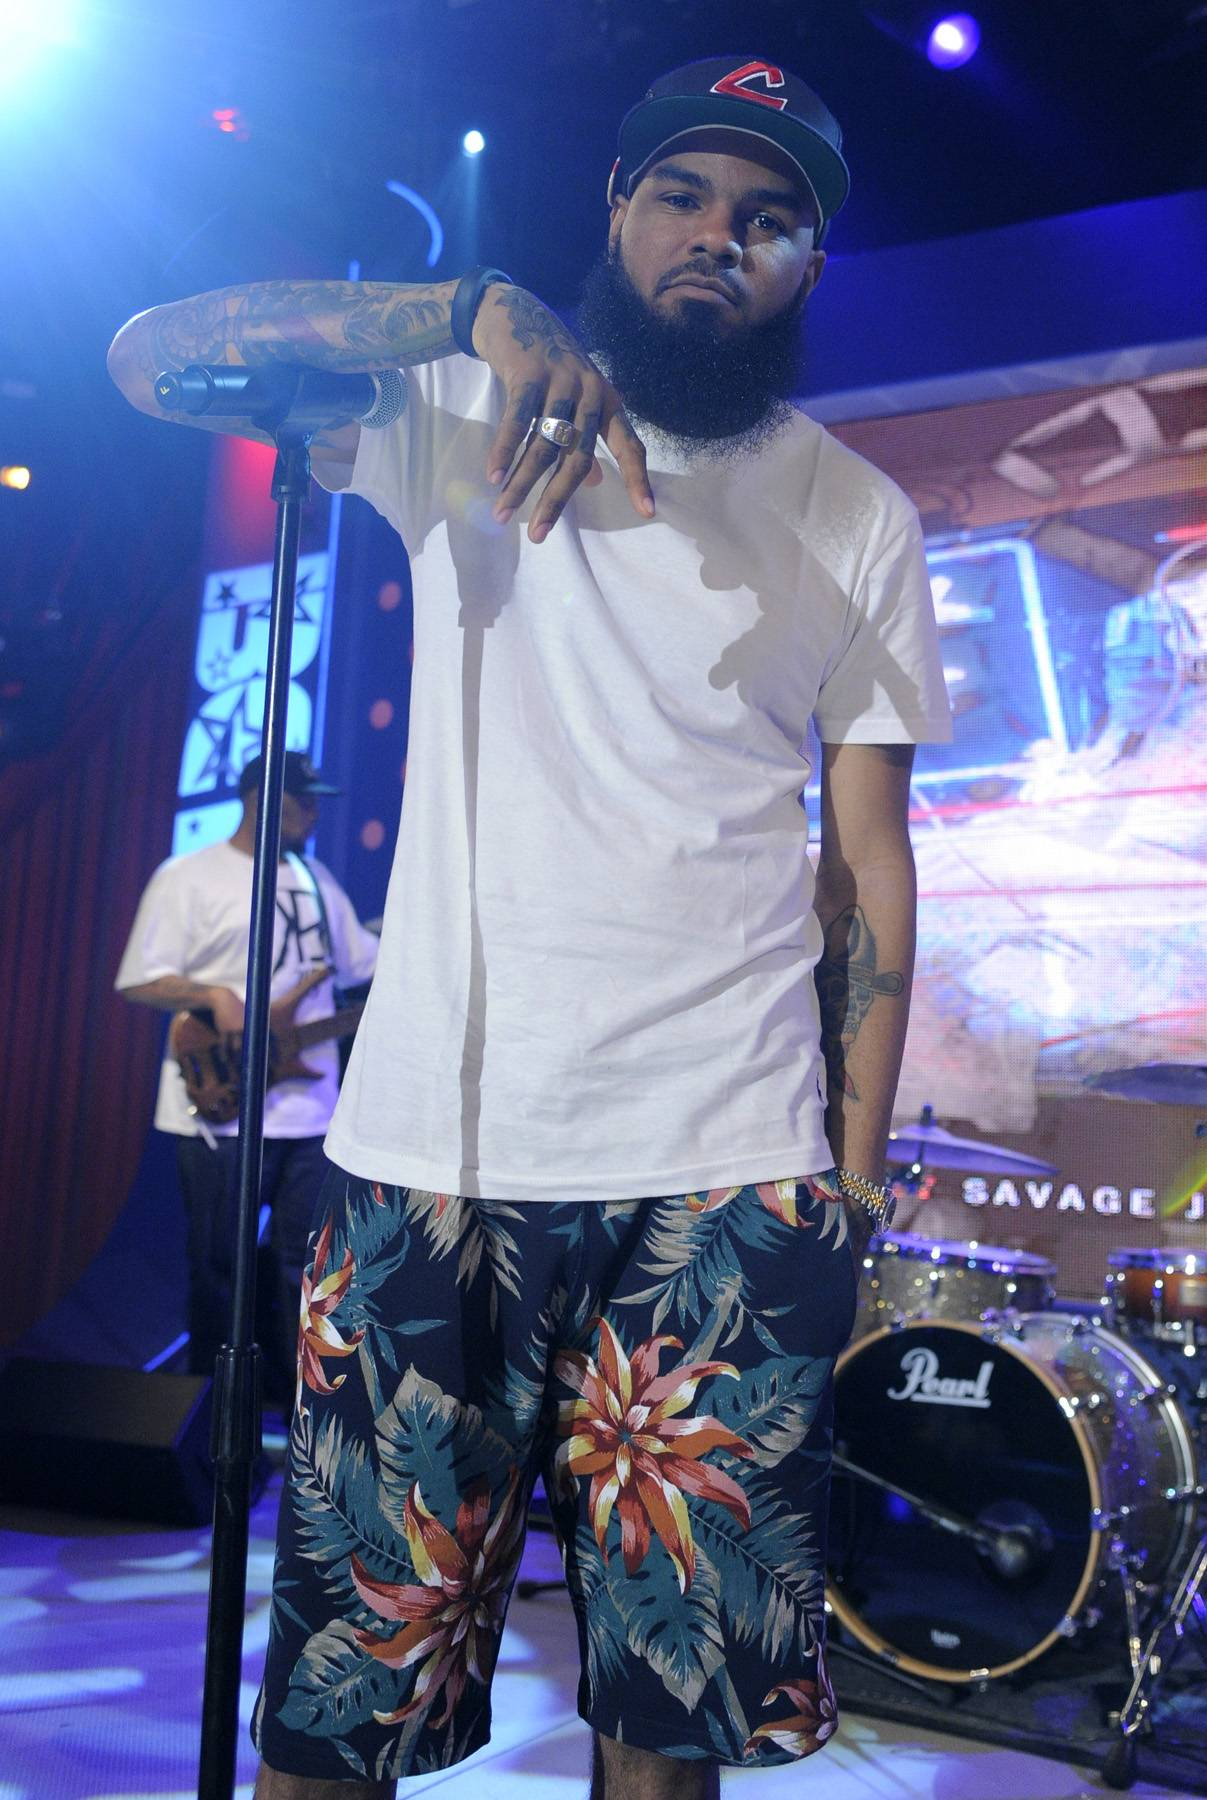 Ready to Go - Stalley of MMG rehearsing before he goes on at 106 & Park, April 17, 2012. (Photo: John Ricard/BET)